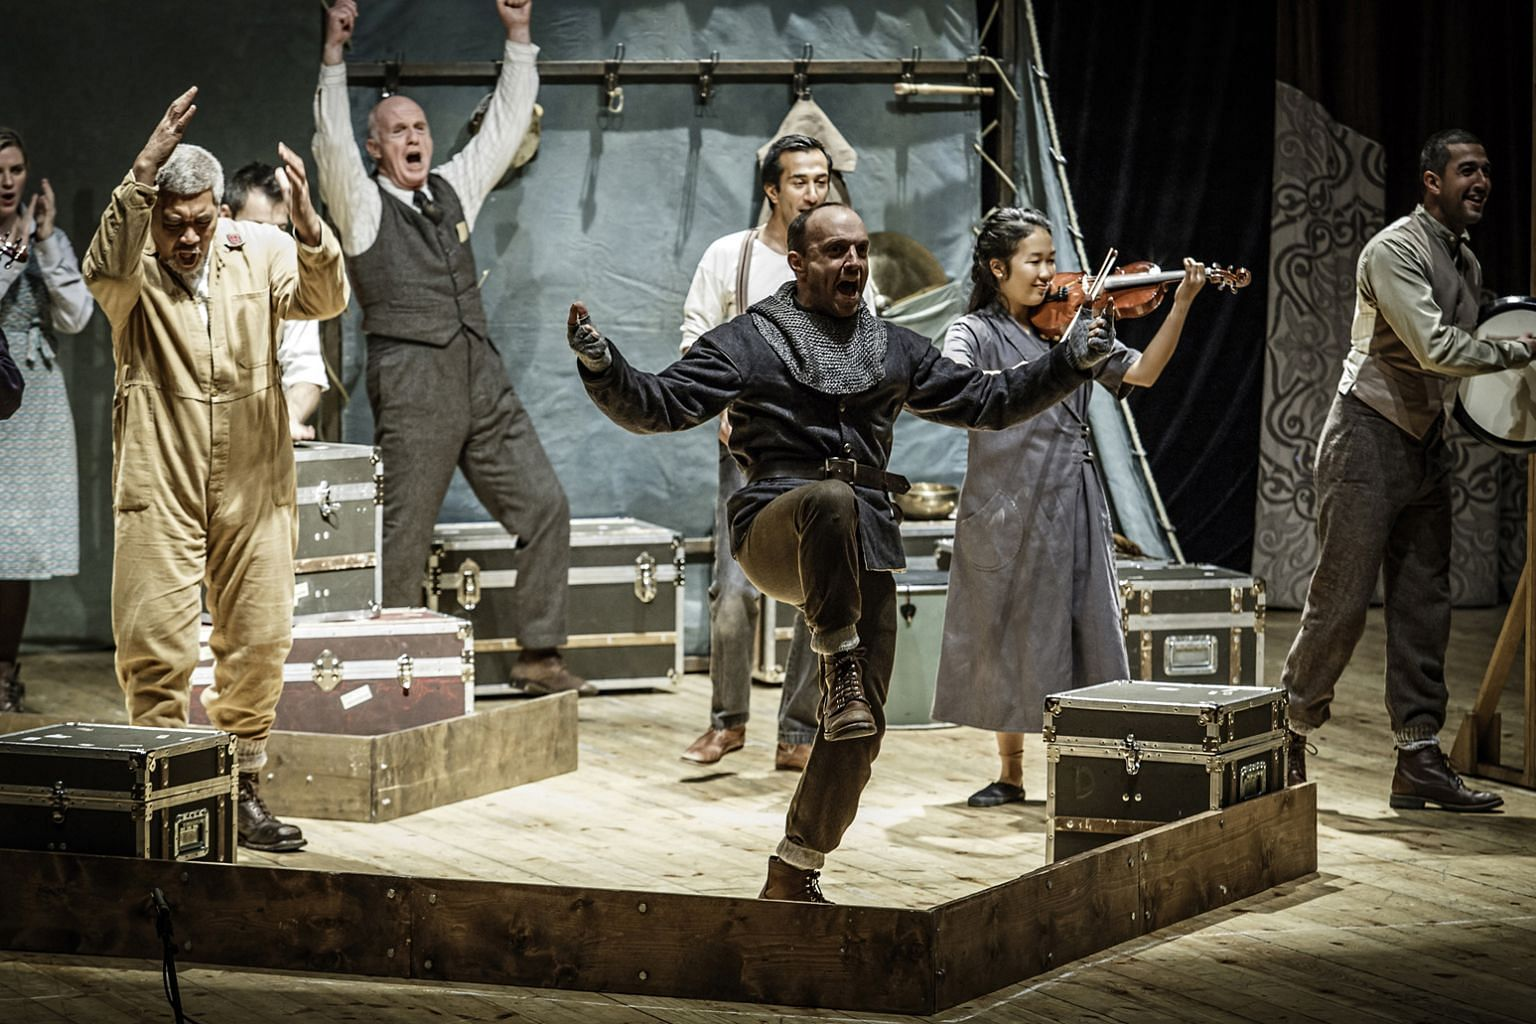 The Globe's travelling production of Hamlet has toured for 16 months to 130 cities.